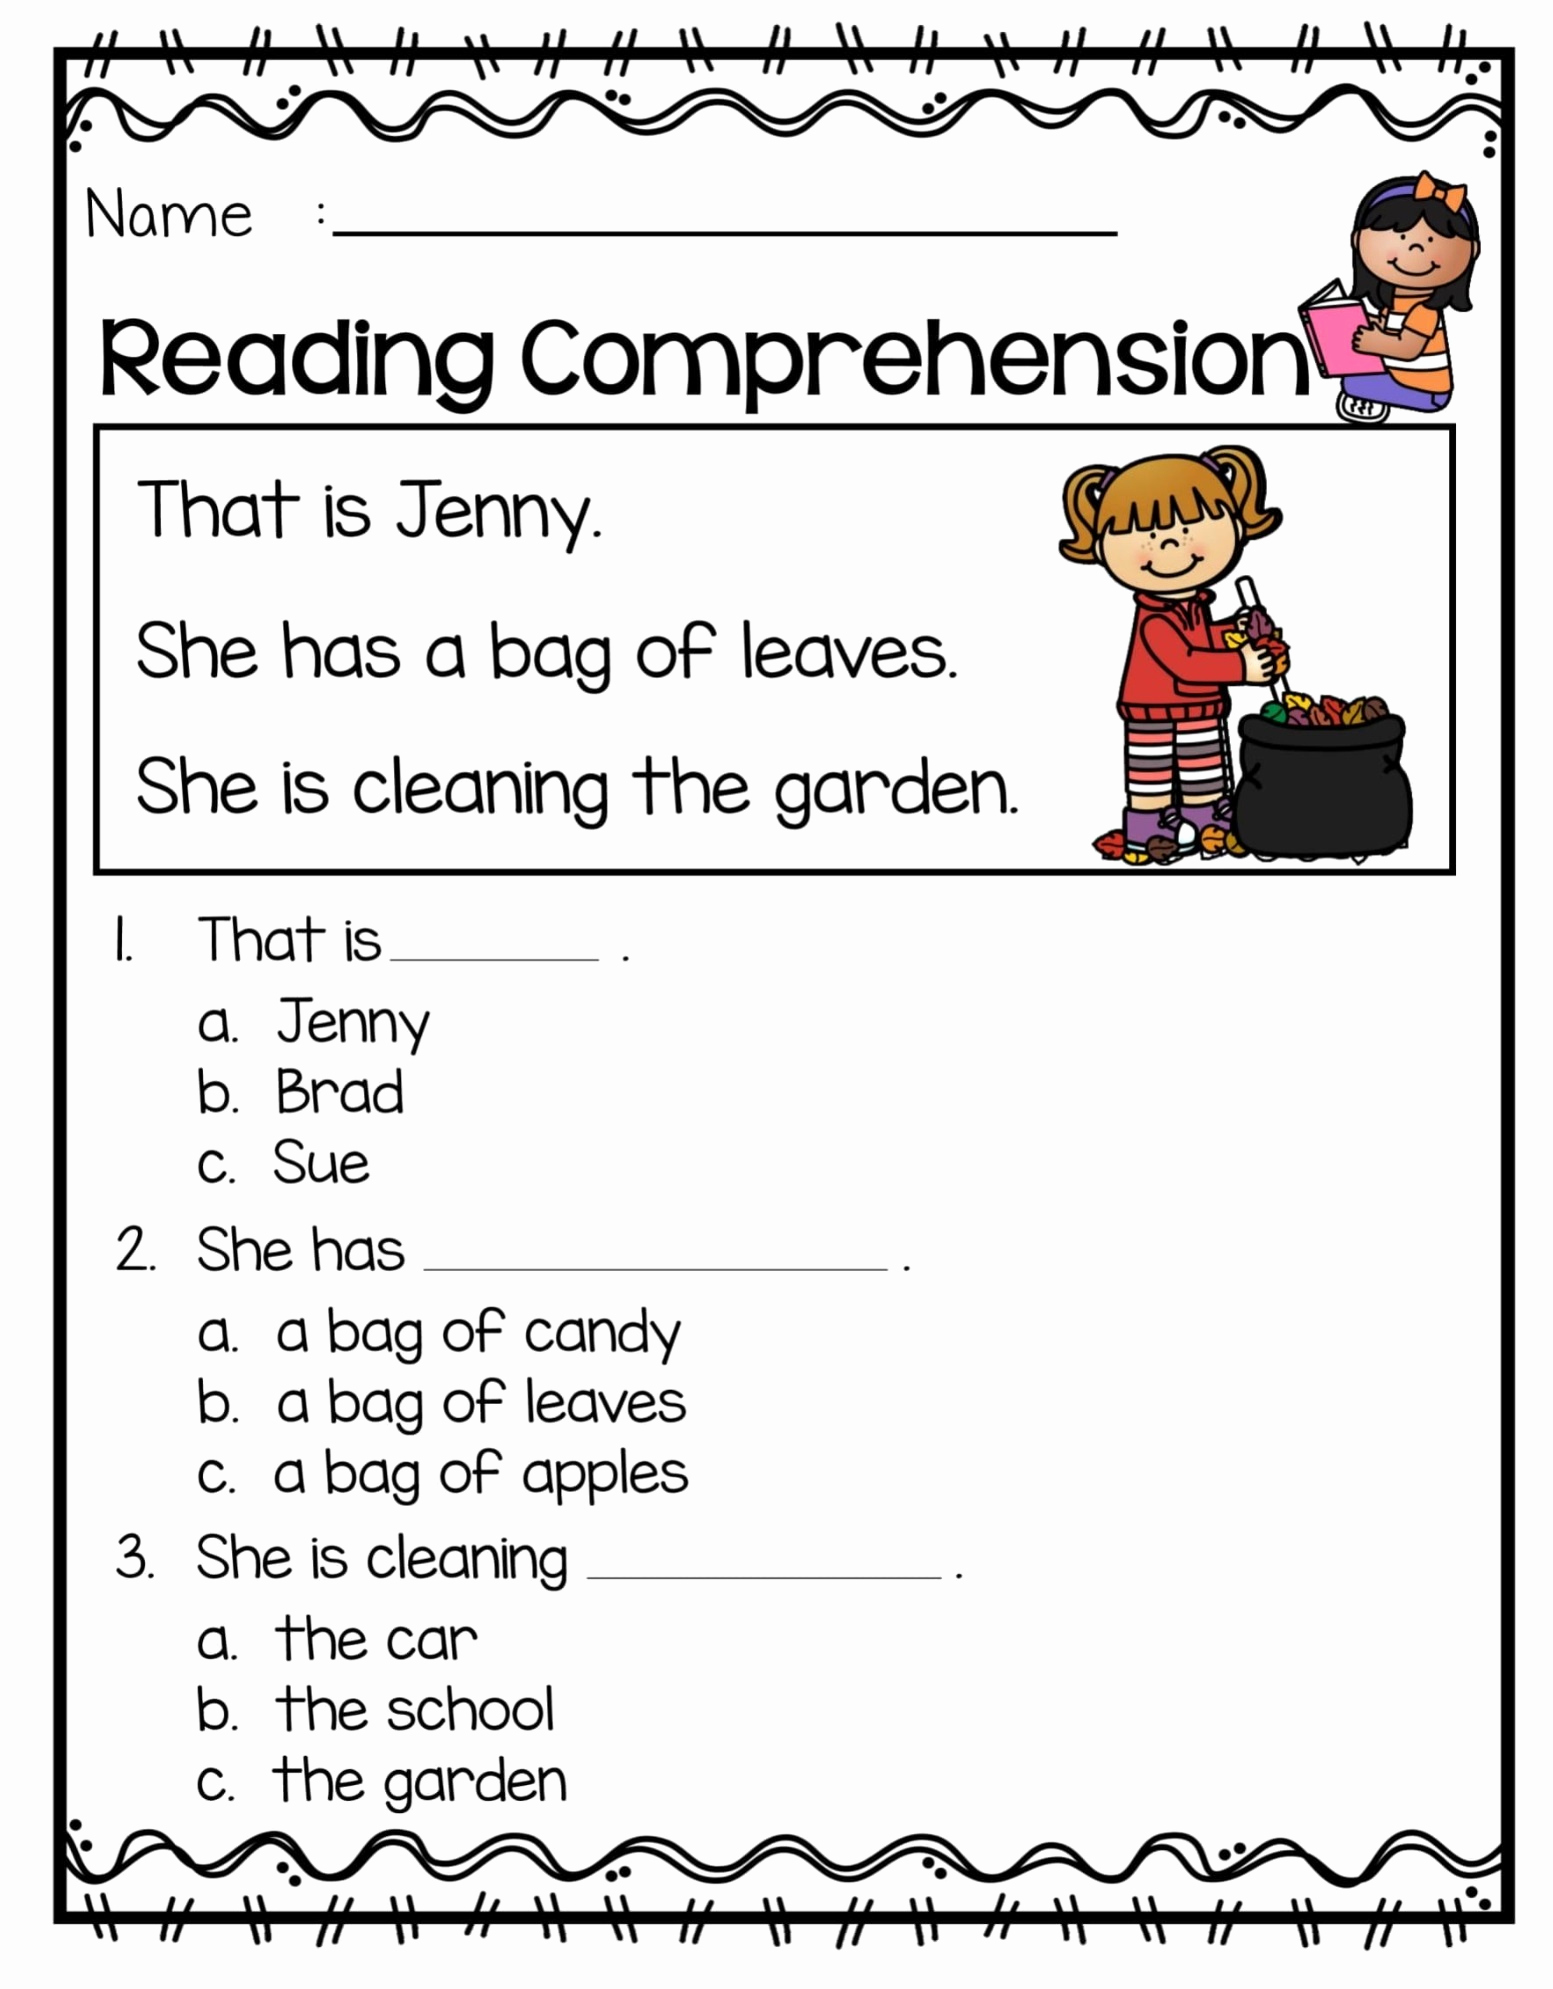 Comprehension Worksheet First Grade Beautiful 1st Grade Reading Prehension Worksheets Printable Pdf